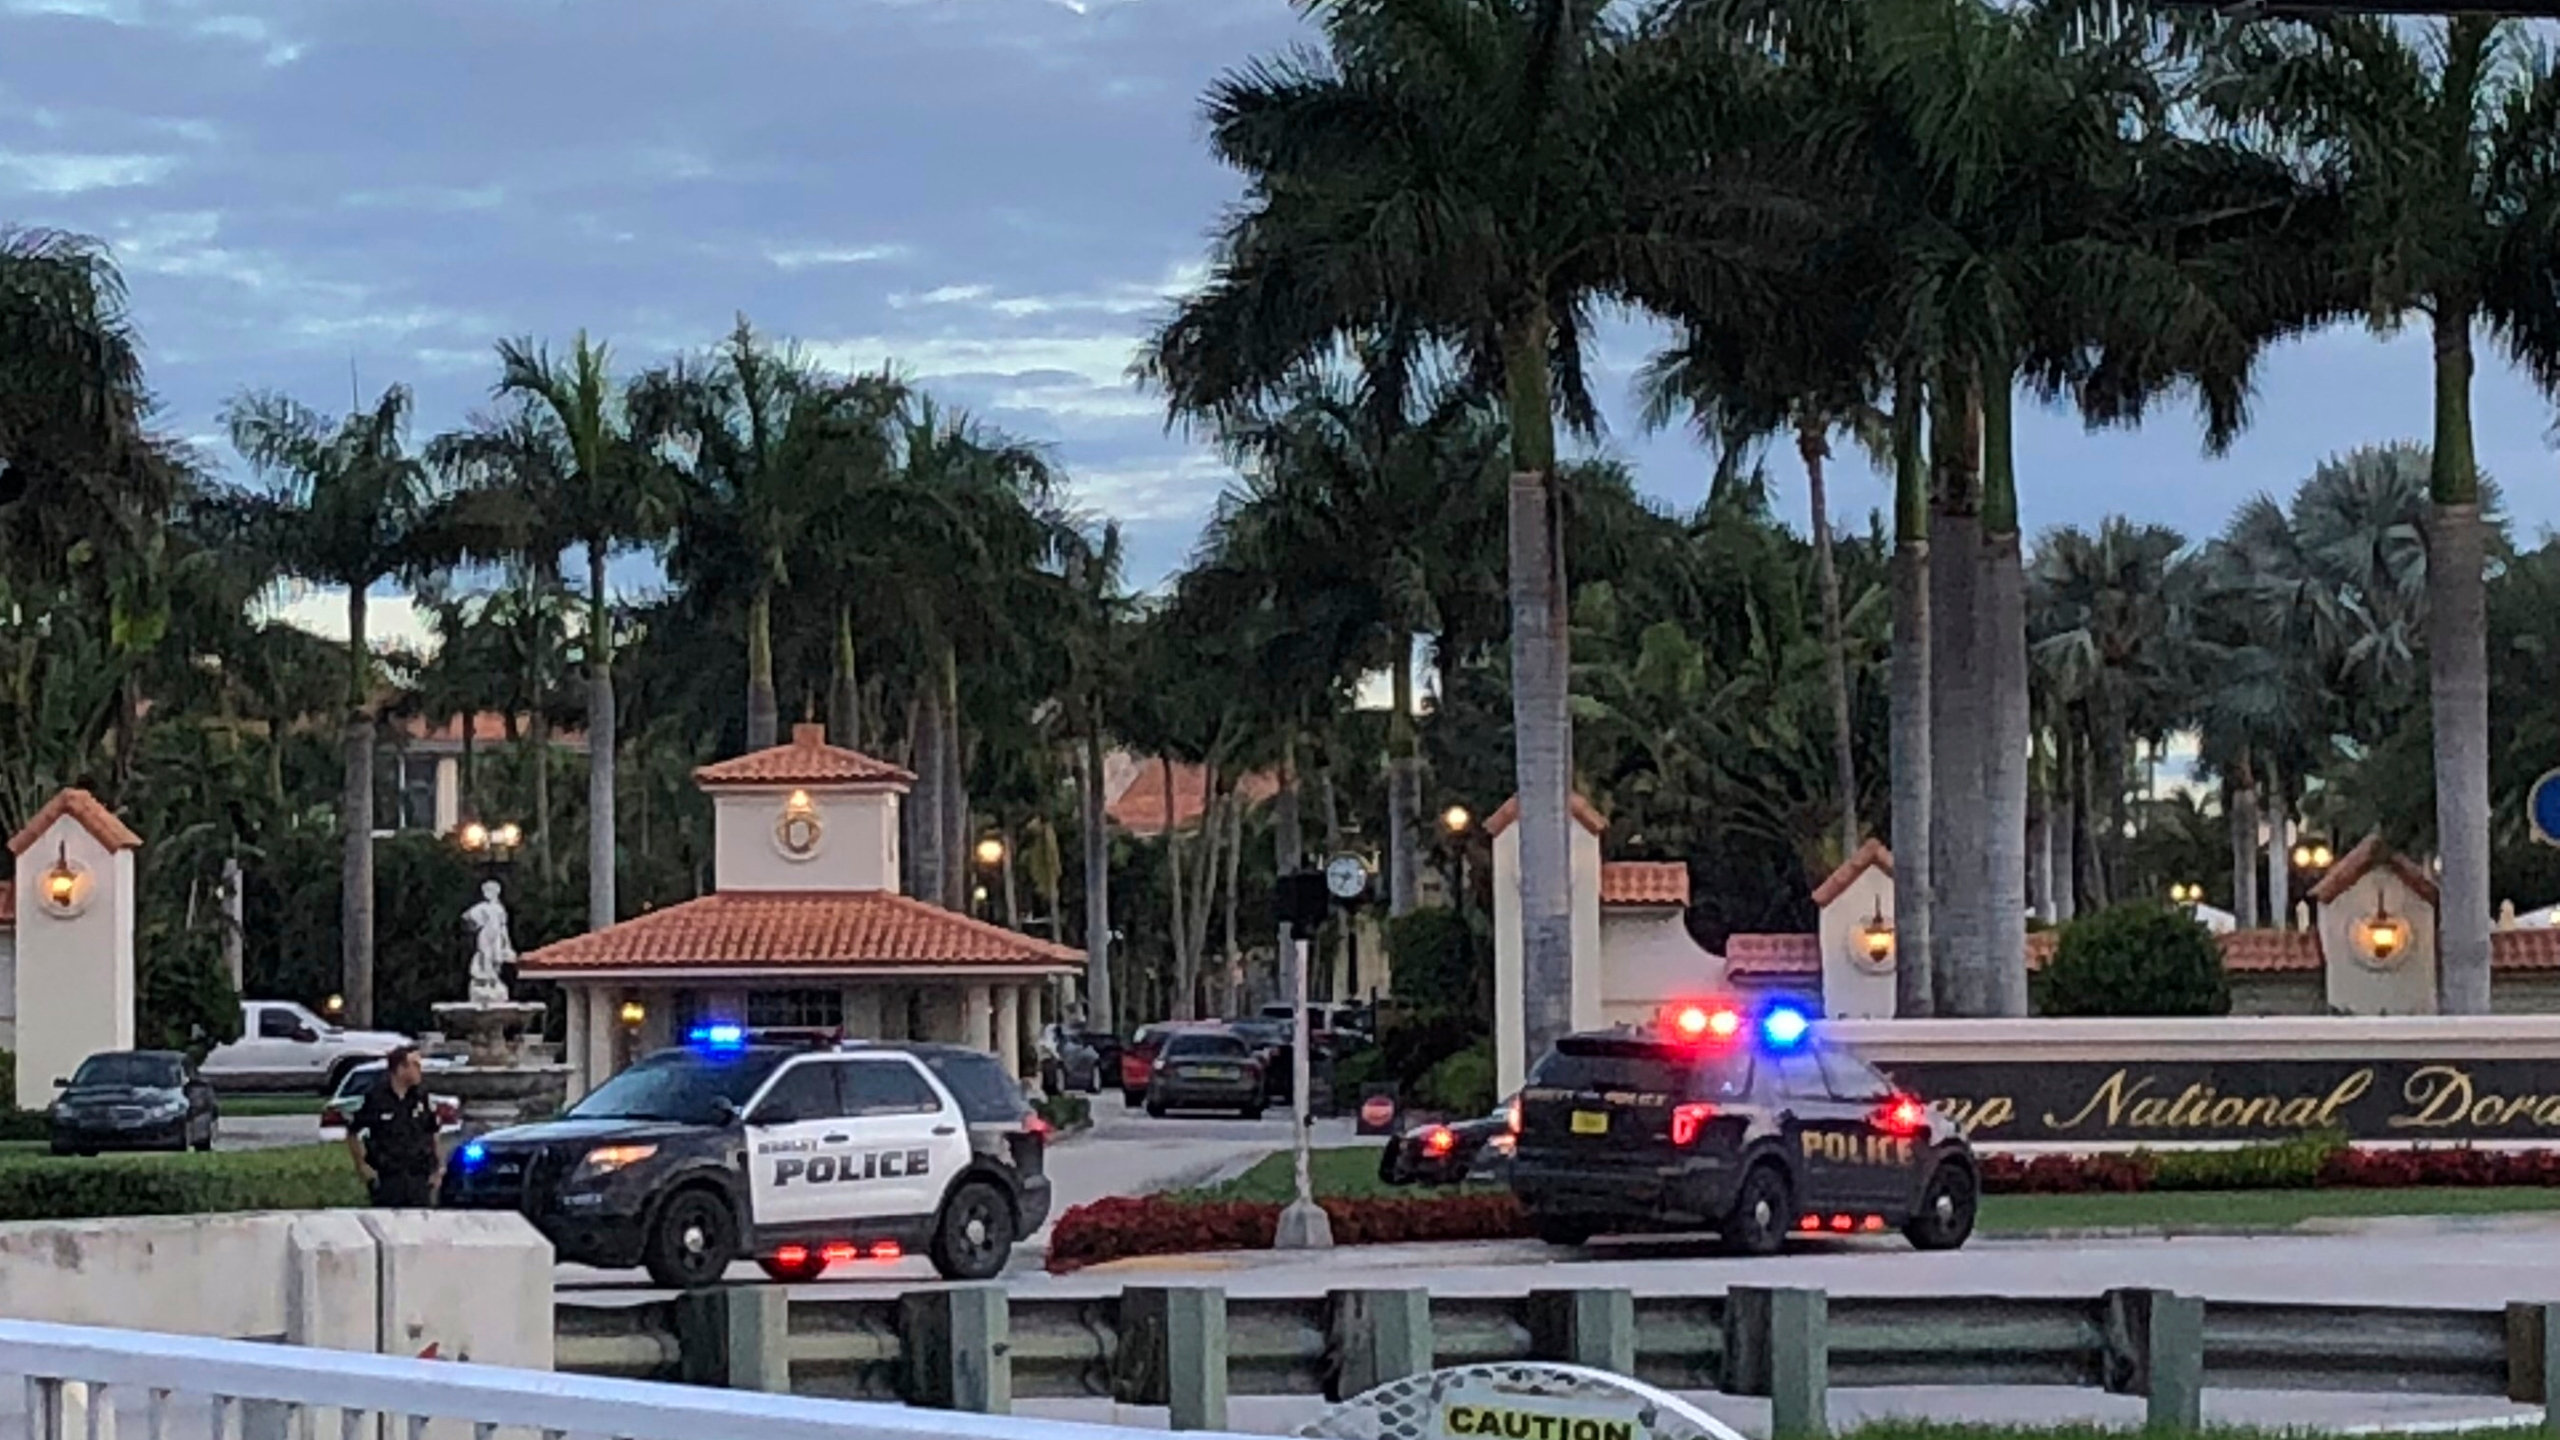 Shots Fired Trump National Doral_1526645570752